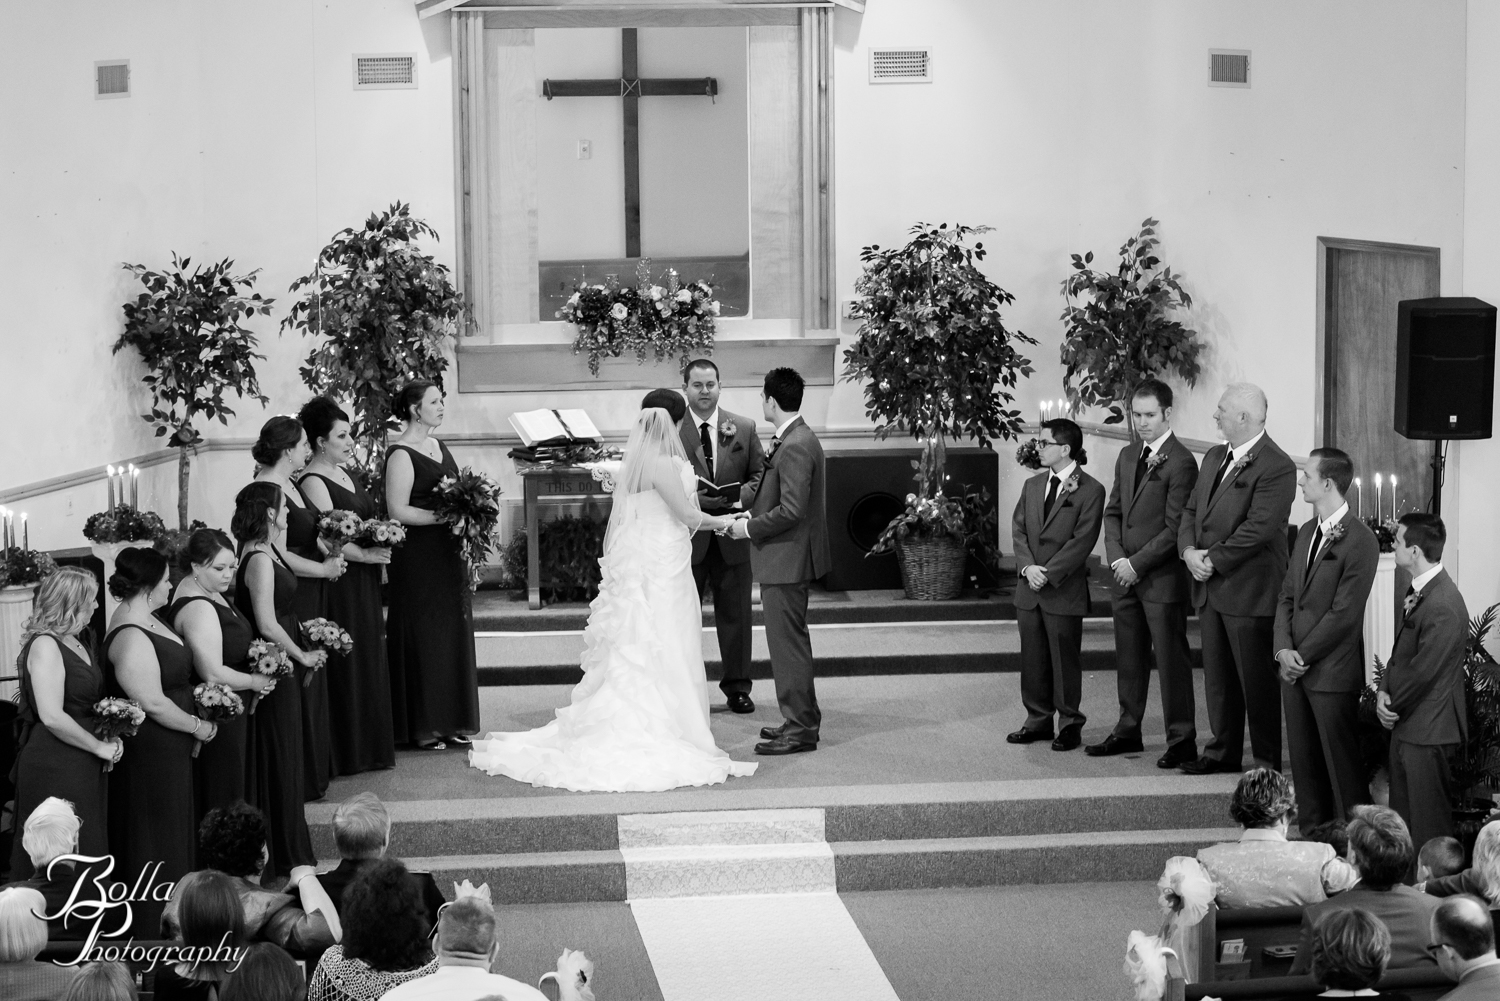 Bolla_Photography_St_Louis_wedding_photographer-0168.jpg